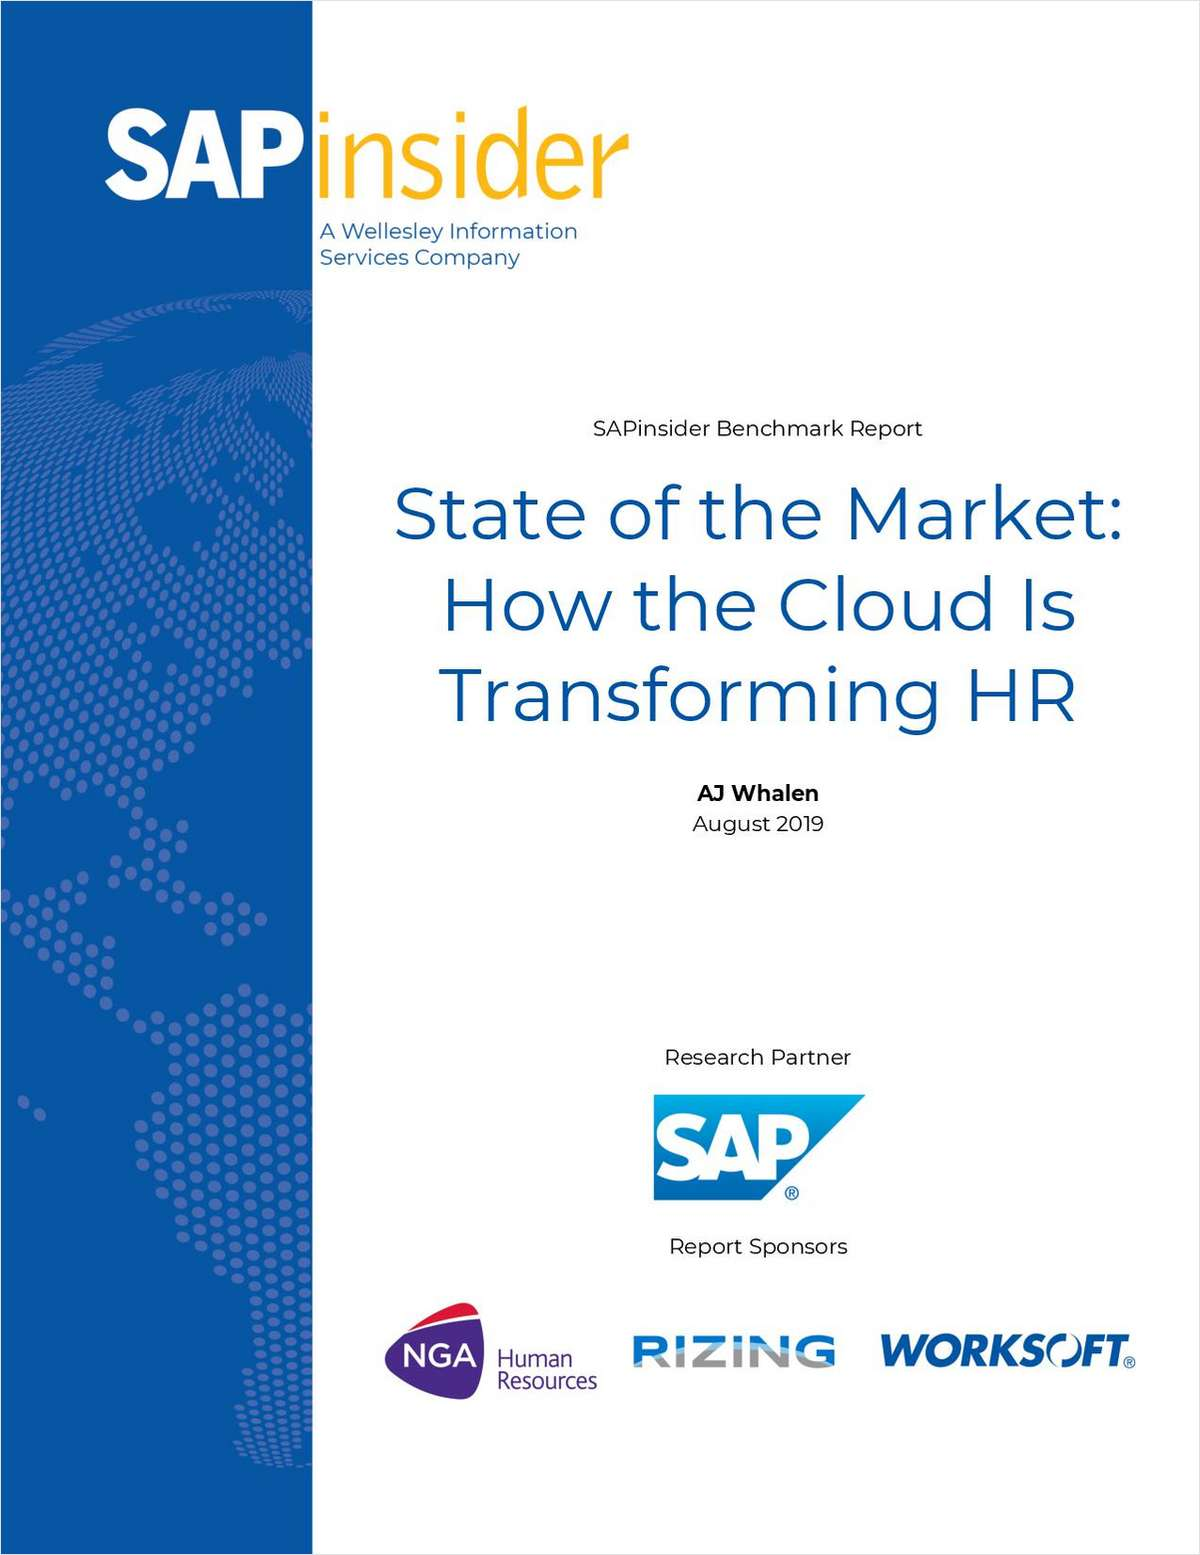 State of the Market: How the Cloud Is Transforming HR